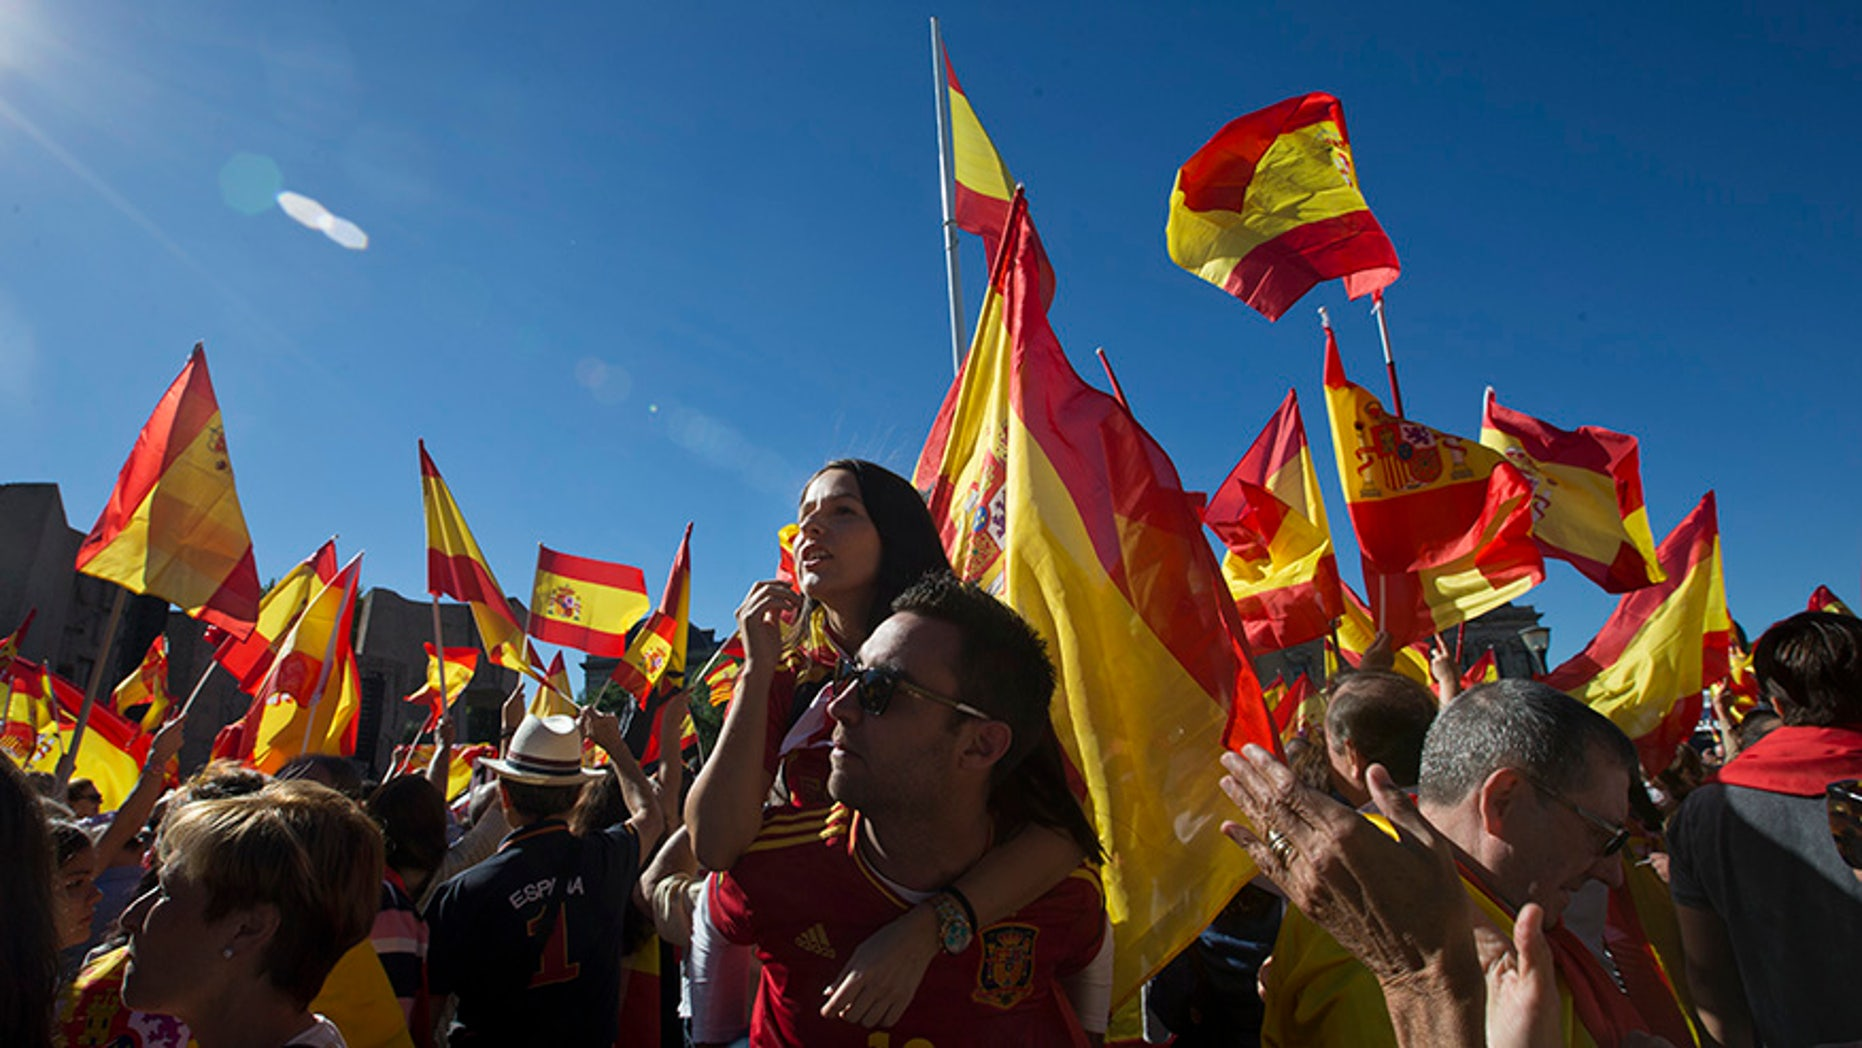 Spaniards pack  Colon Square in Madrid, Spain, Saturday, Oct. 7, 2017. Thousands of pro-Spanish unity supporters donning Spanish flags have rallied in a central Madrid plaza to protest the Catalan regional government's drive to separate from Spain. (AP Photo/Paul White)